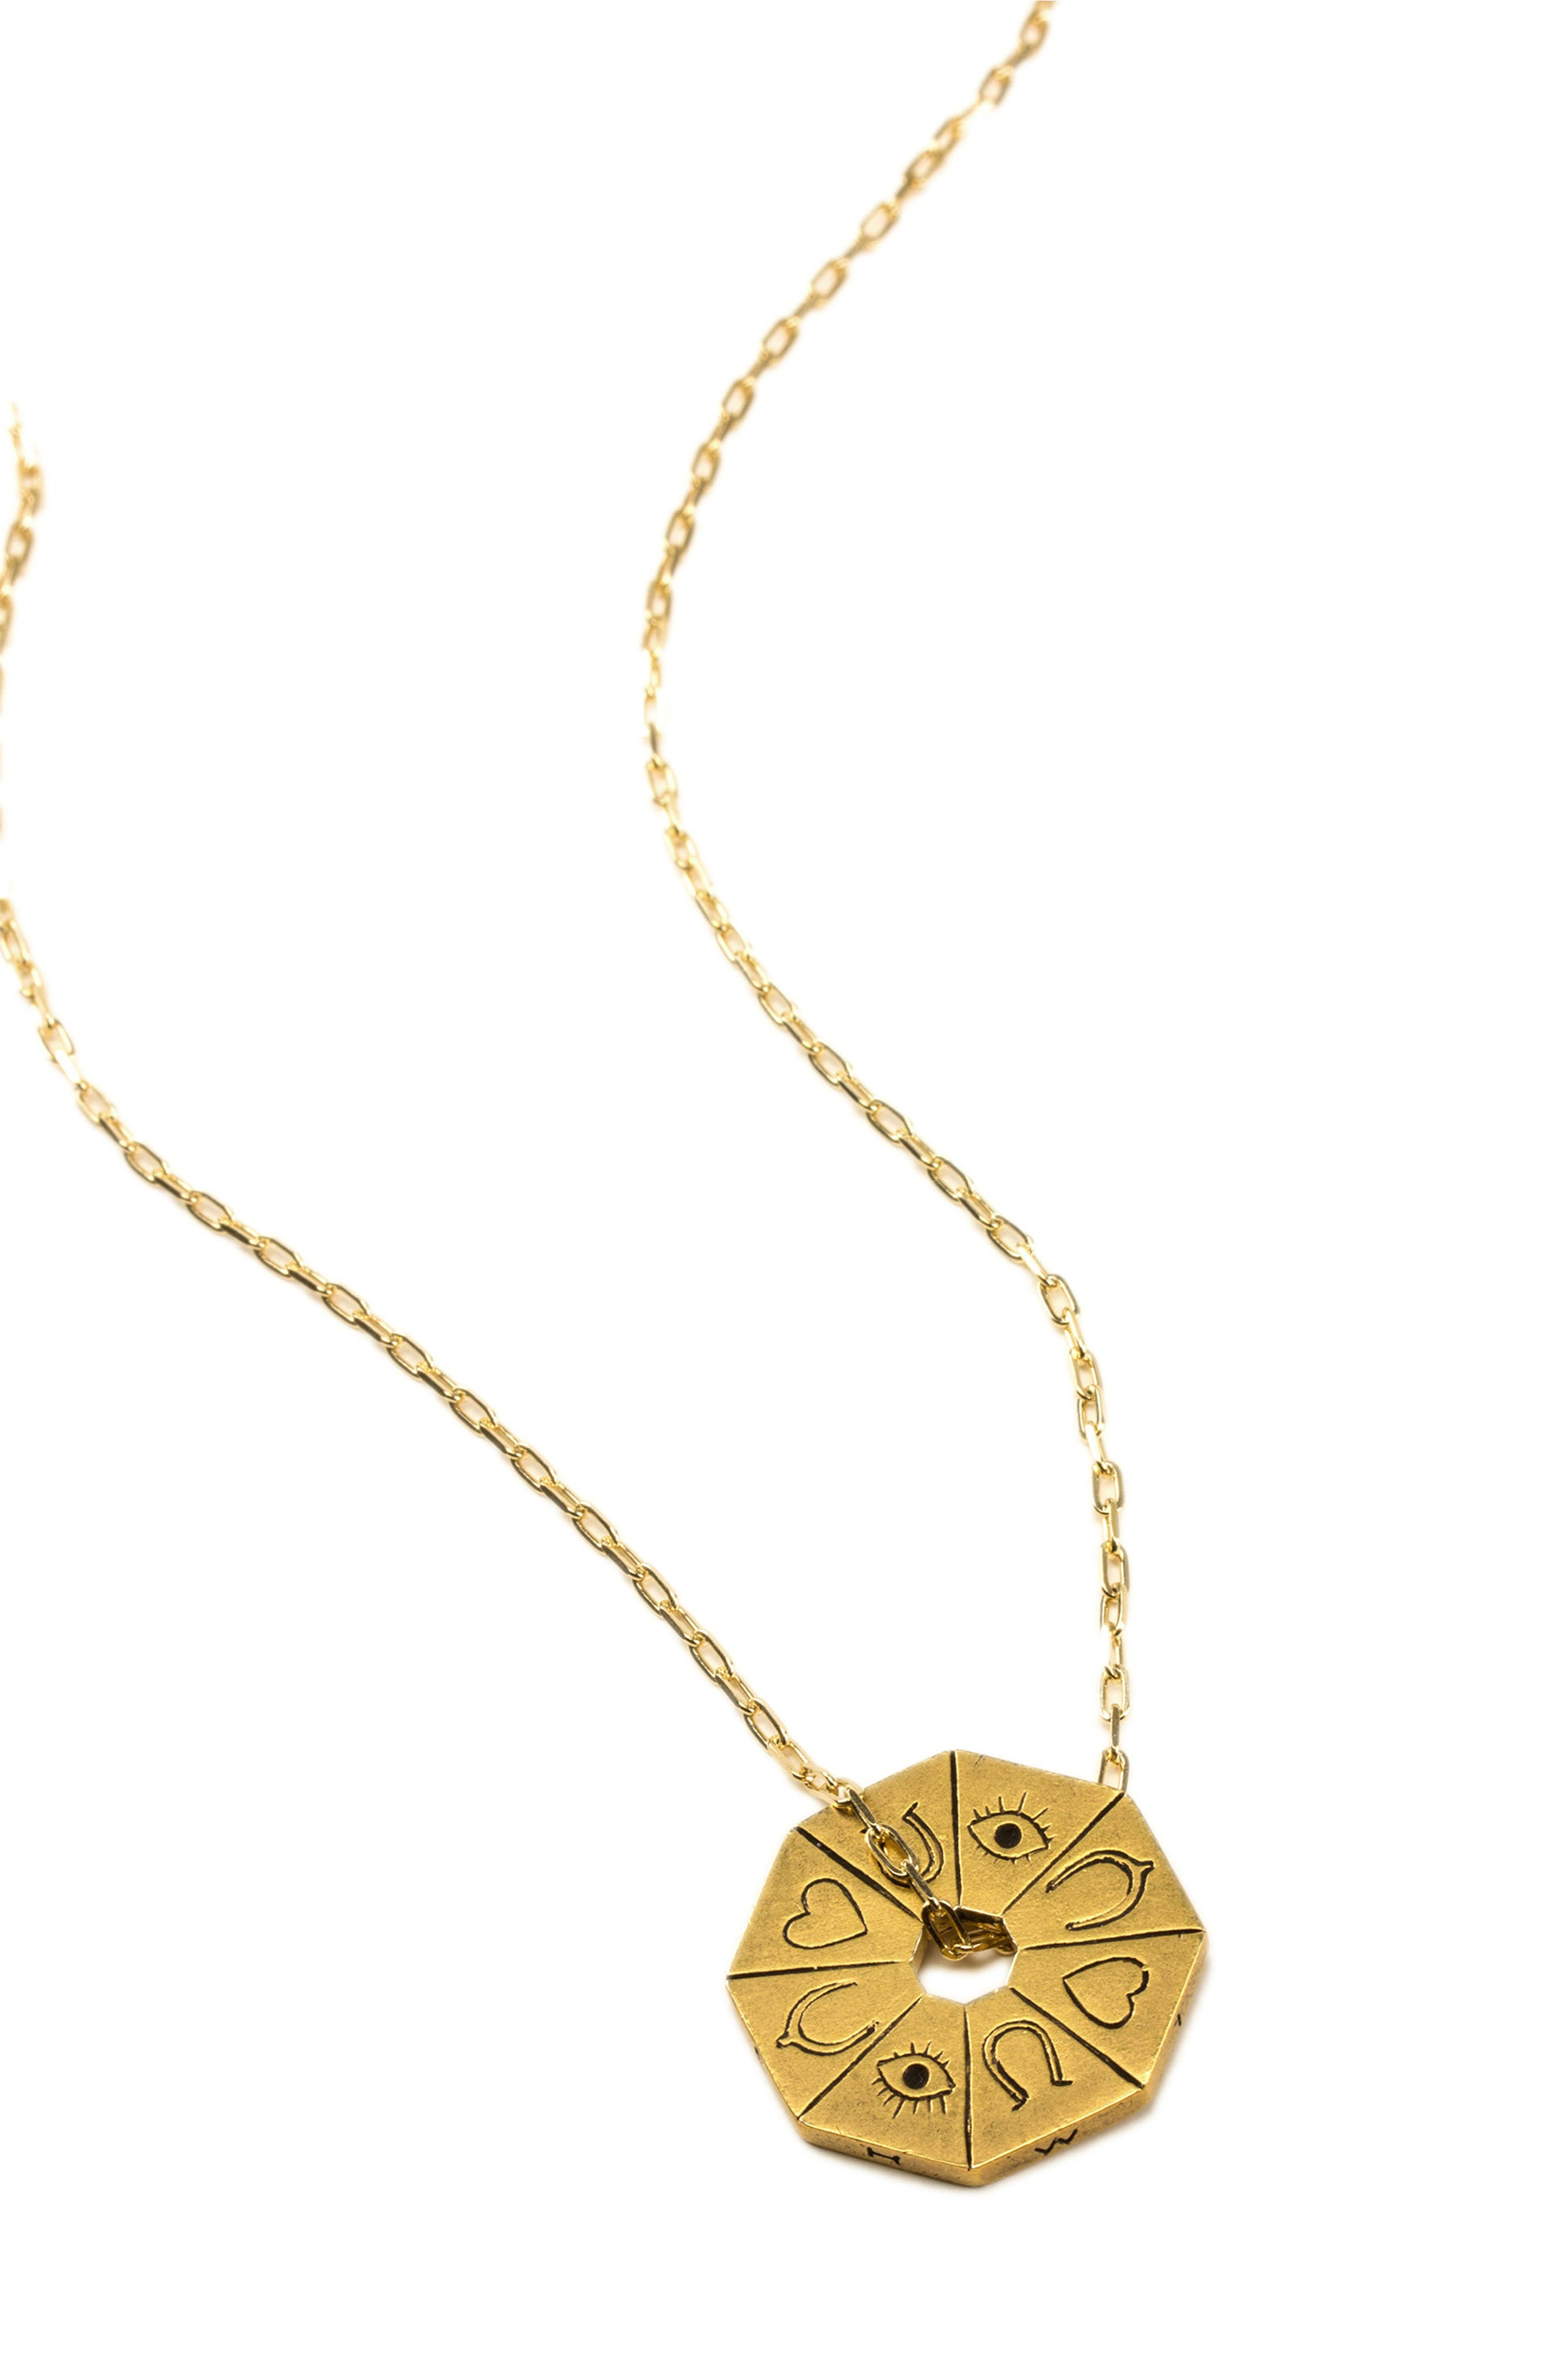 Petalbox Wish Spinner Pendant Necklace,                             Alternate thumbnail 2, color,                             Gold